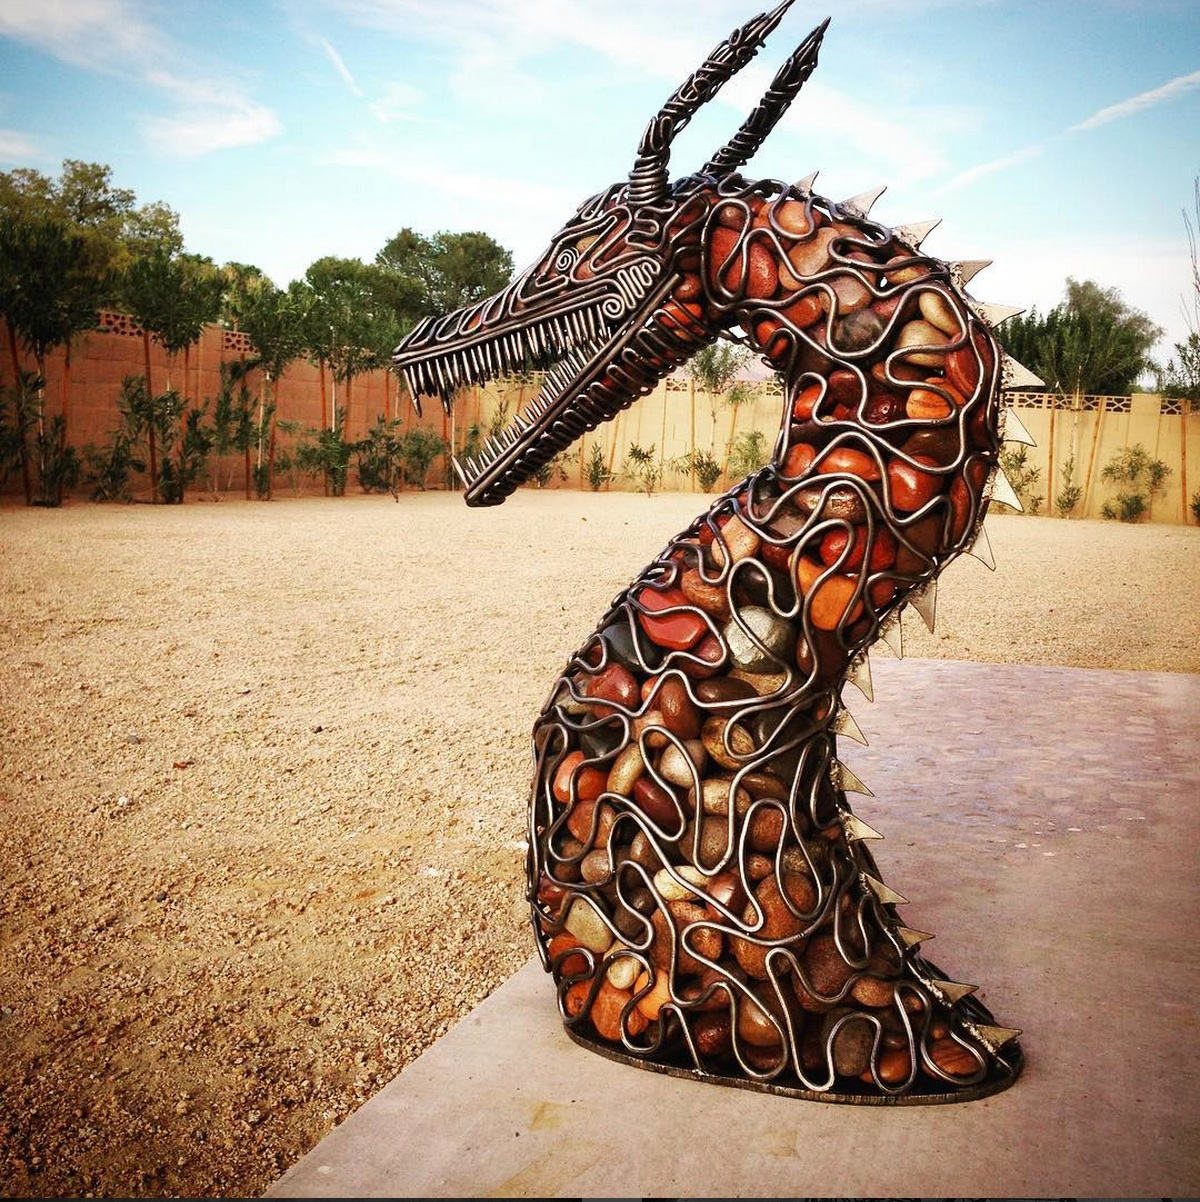 Steel Rod River Rock Dragon Outdoor Sculpture - McCallister Sculpture